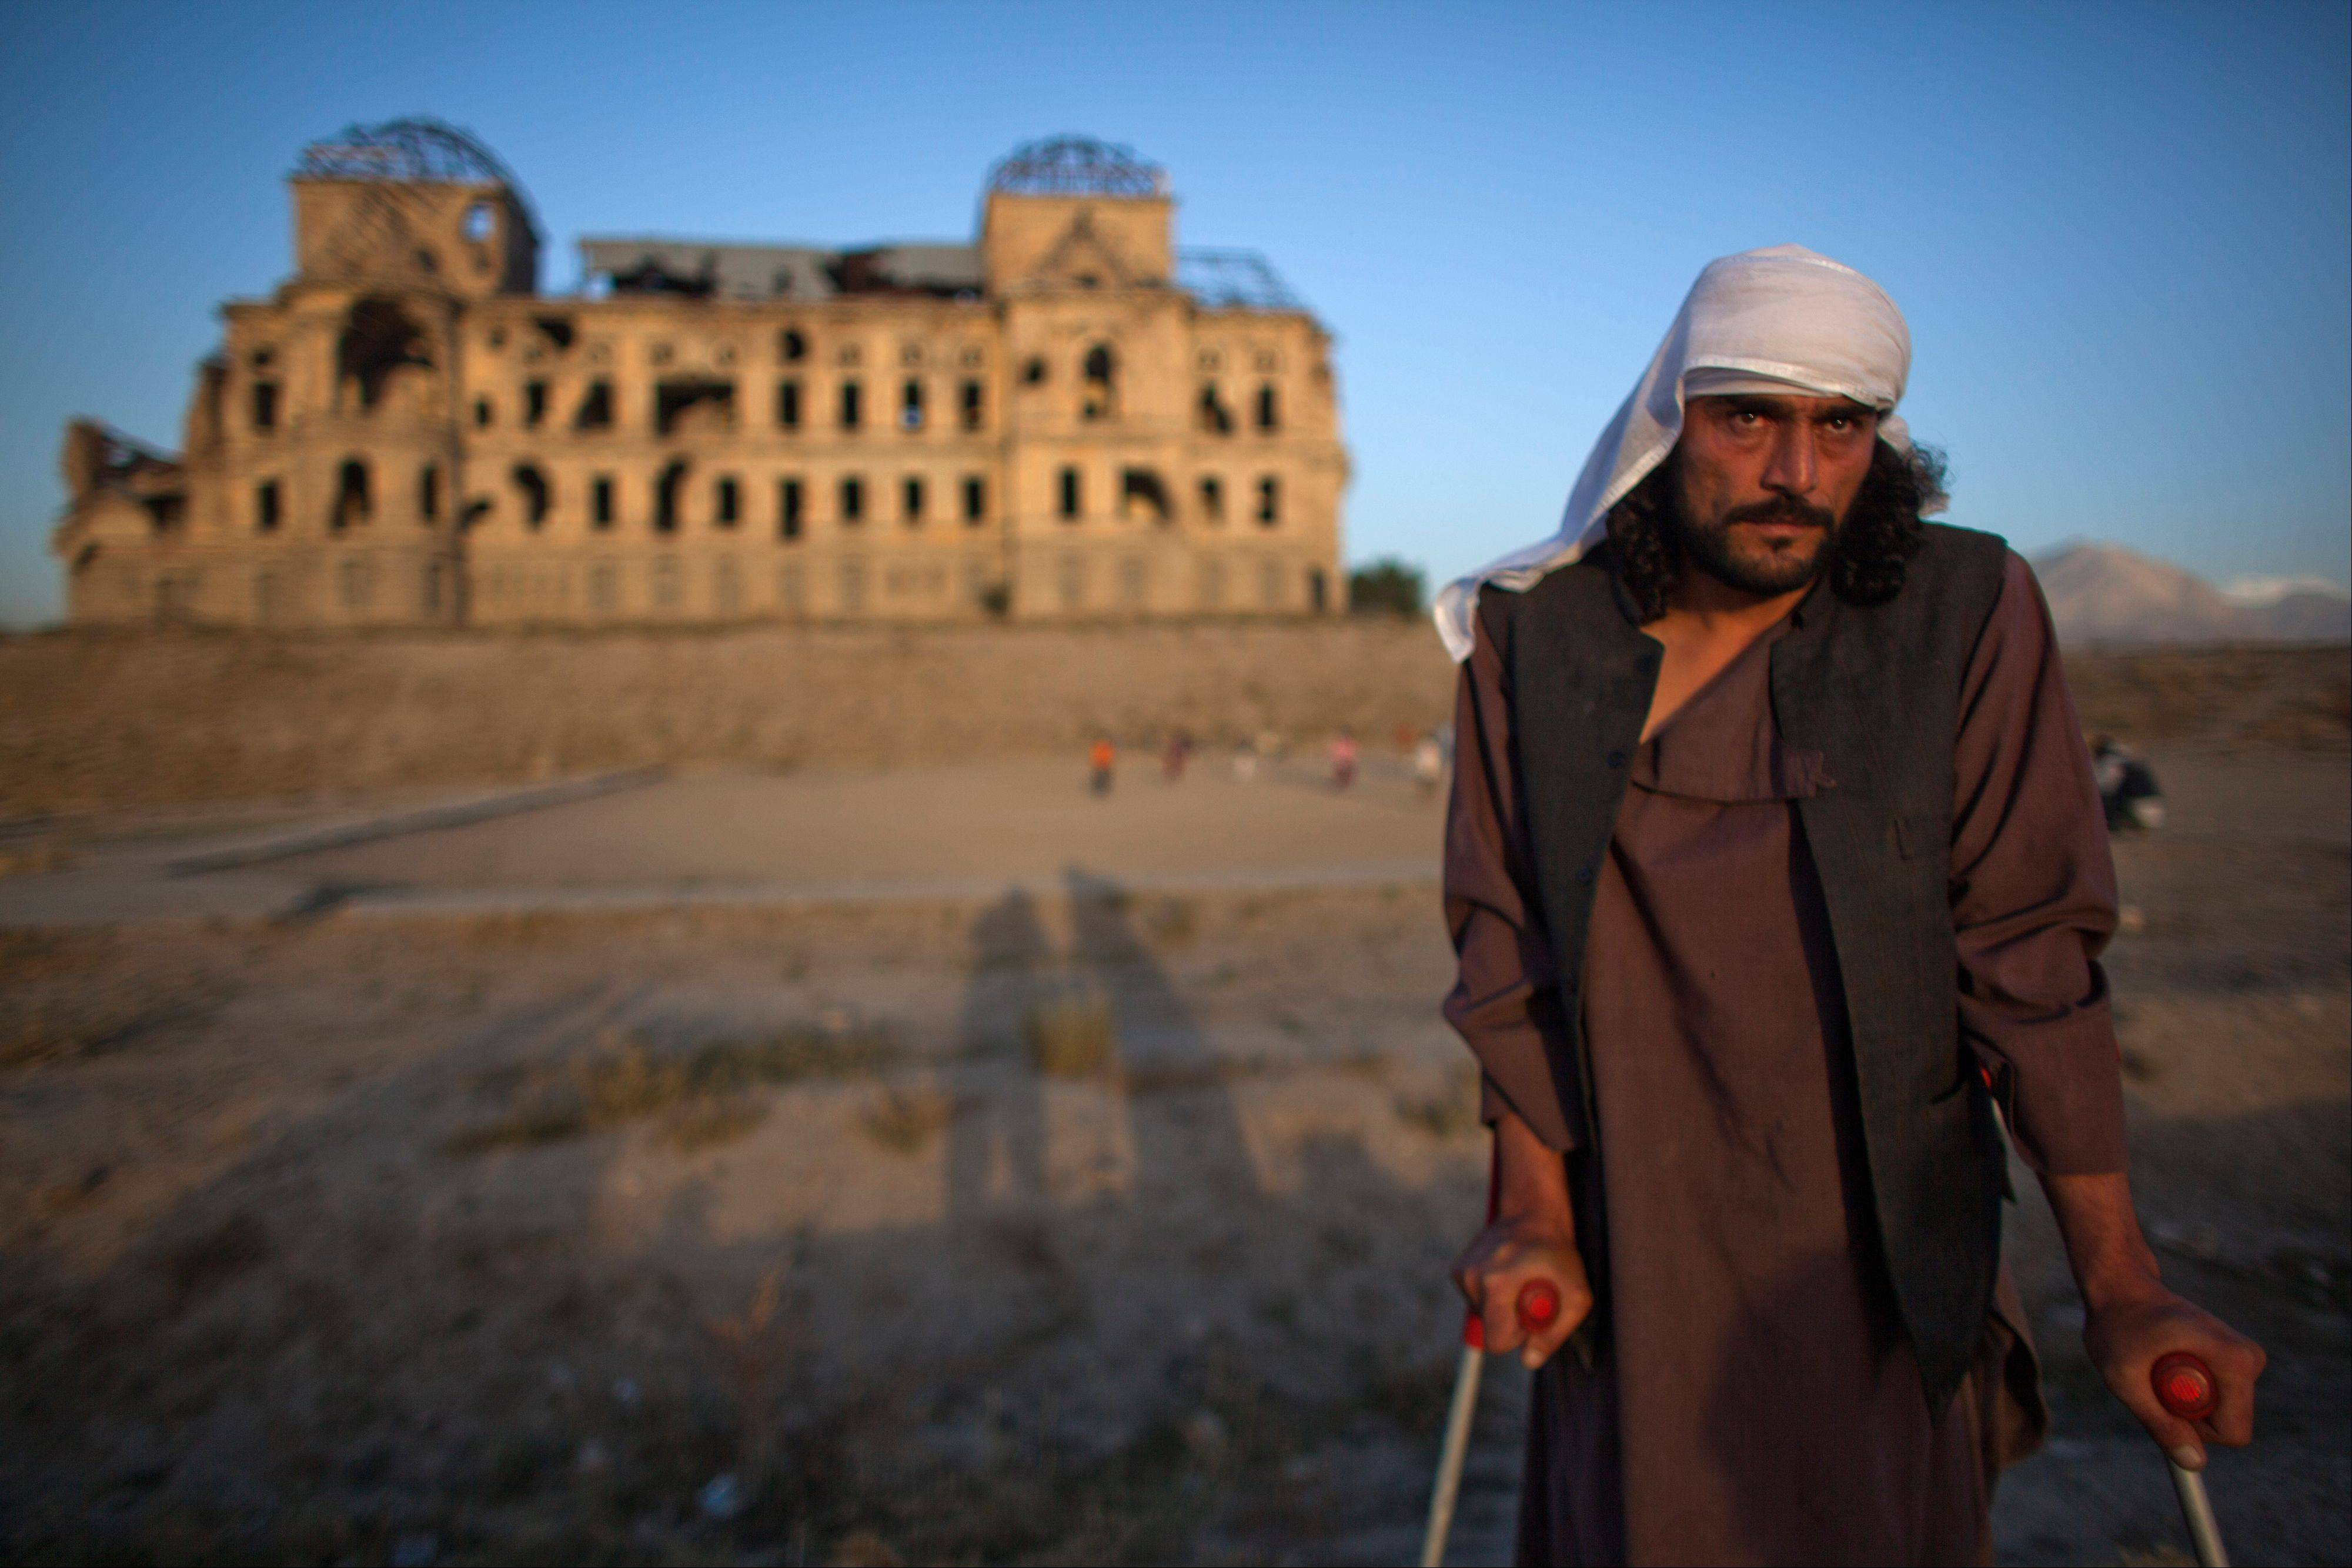 In this Thursday, Oct. 4, 2012 photo, Wahidullah, 32, whose spine was pierced by a bullet during the civil war that left him crippled, poses for a photograph in front of Darul Aman Palace which was damaged during the civil war in Kabul, Afghanistan. Wahidullah was a teenager when he fought in west Kabul during the civil war.